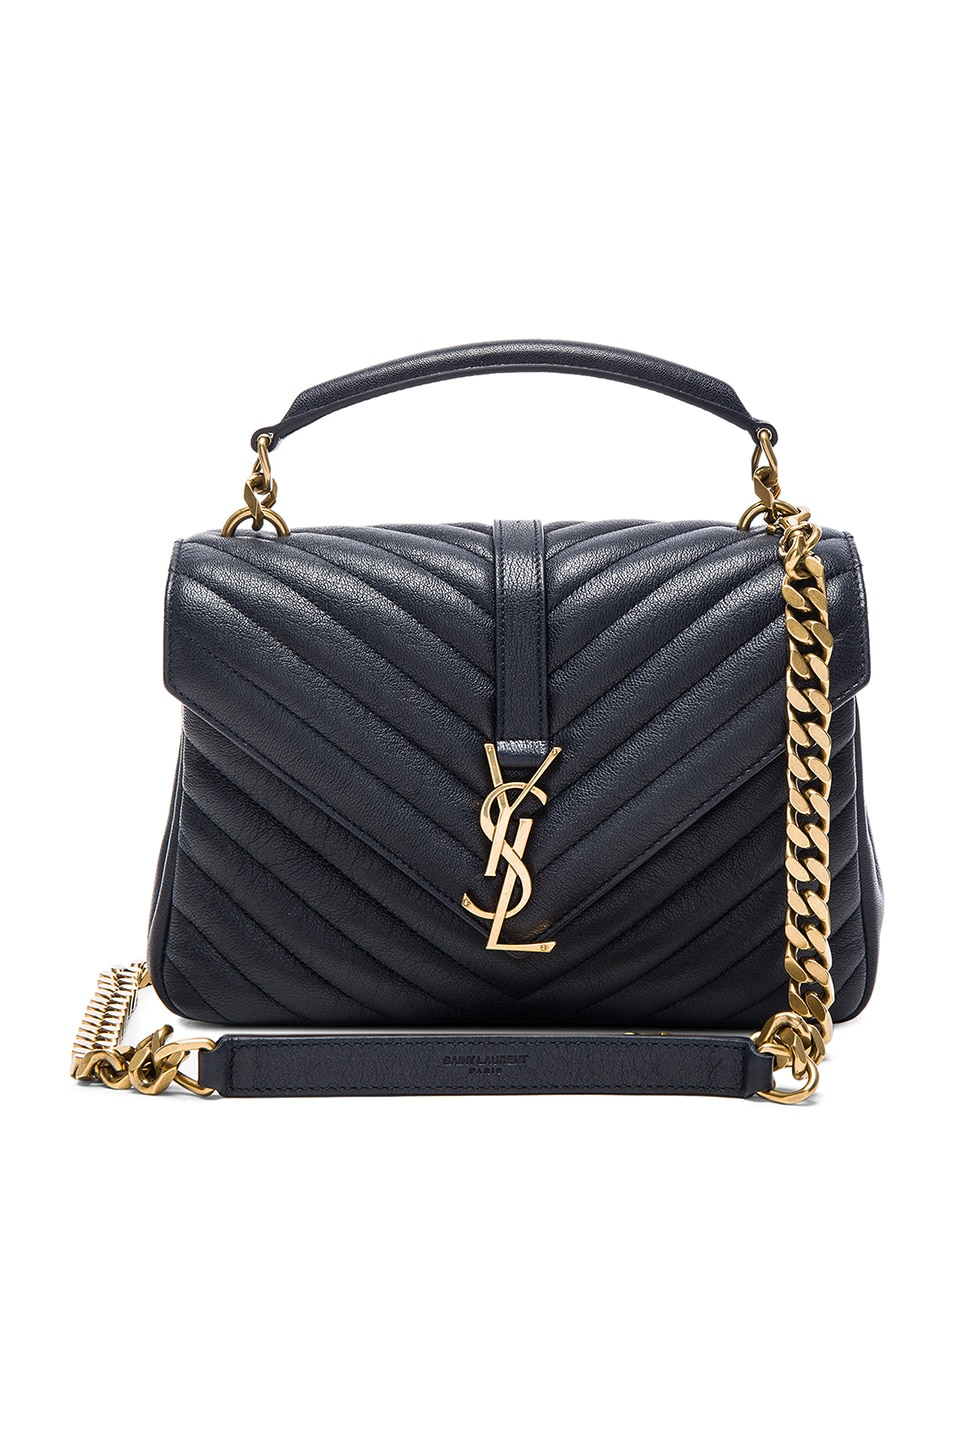 Image 1 of Saint Laurent Medium Monogramme College Bag in Marine